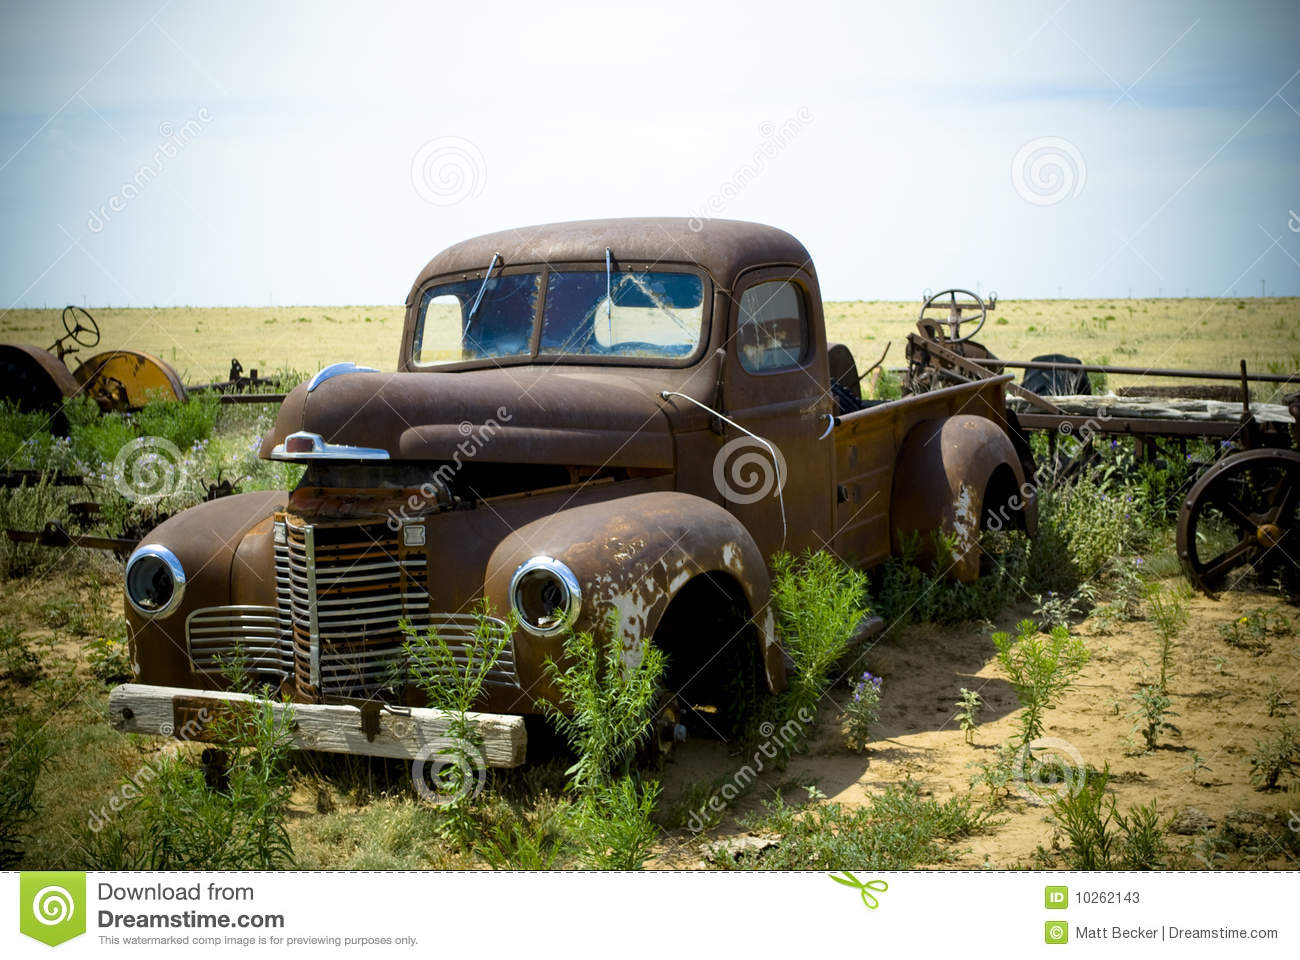 Abandoned Old Fashioned Truck Stock Image - Image of discarded ...